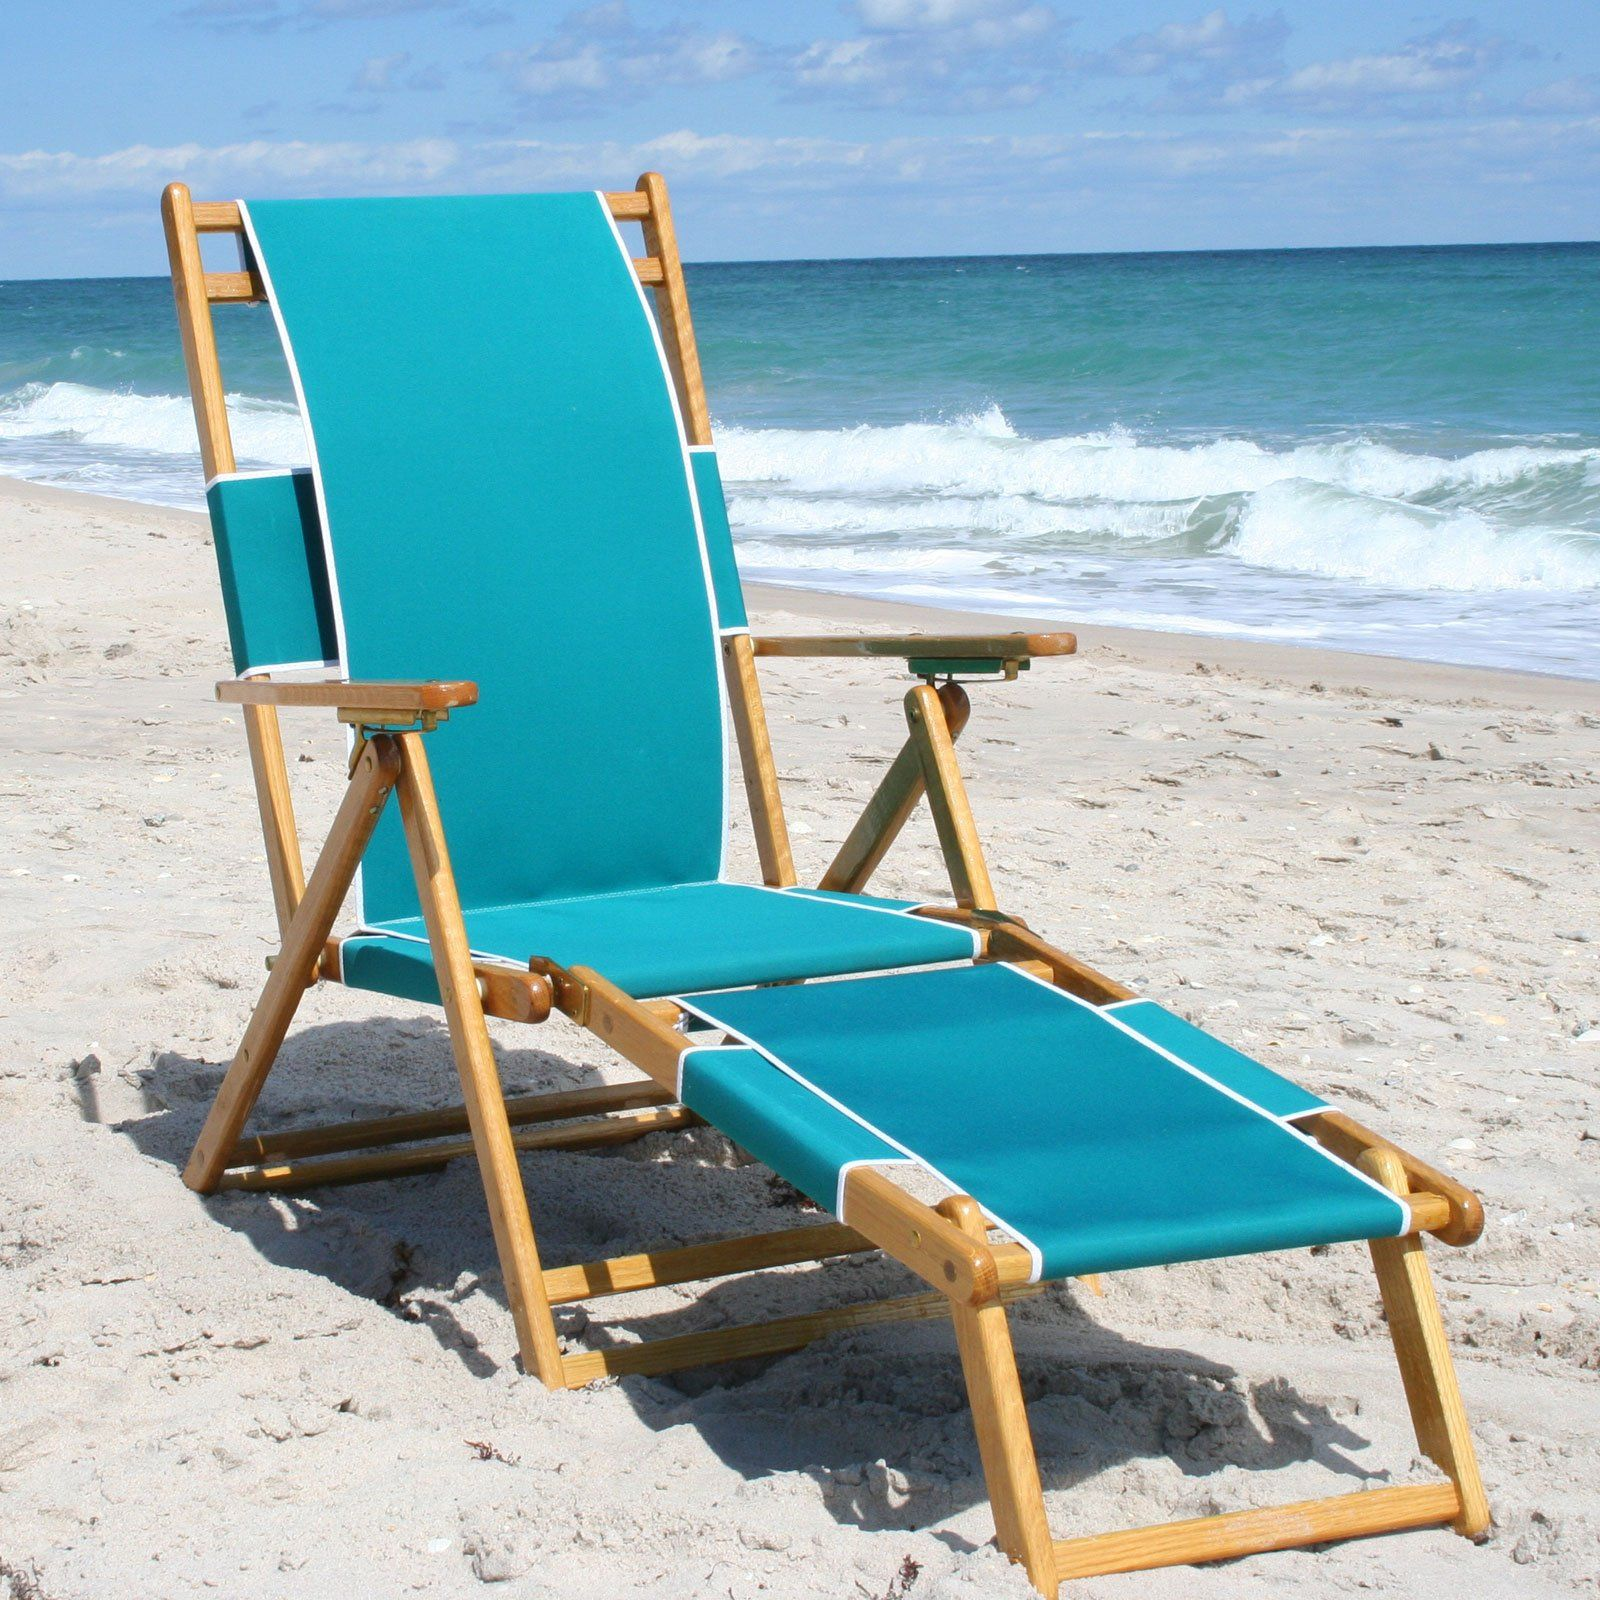 I LOVE beach chairs with a foot rest. I can totally see